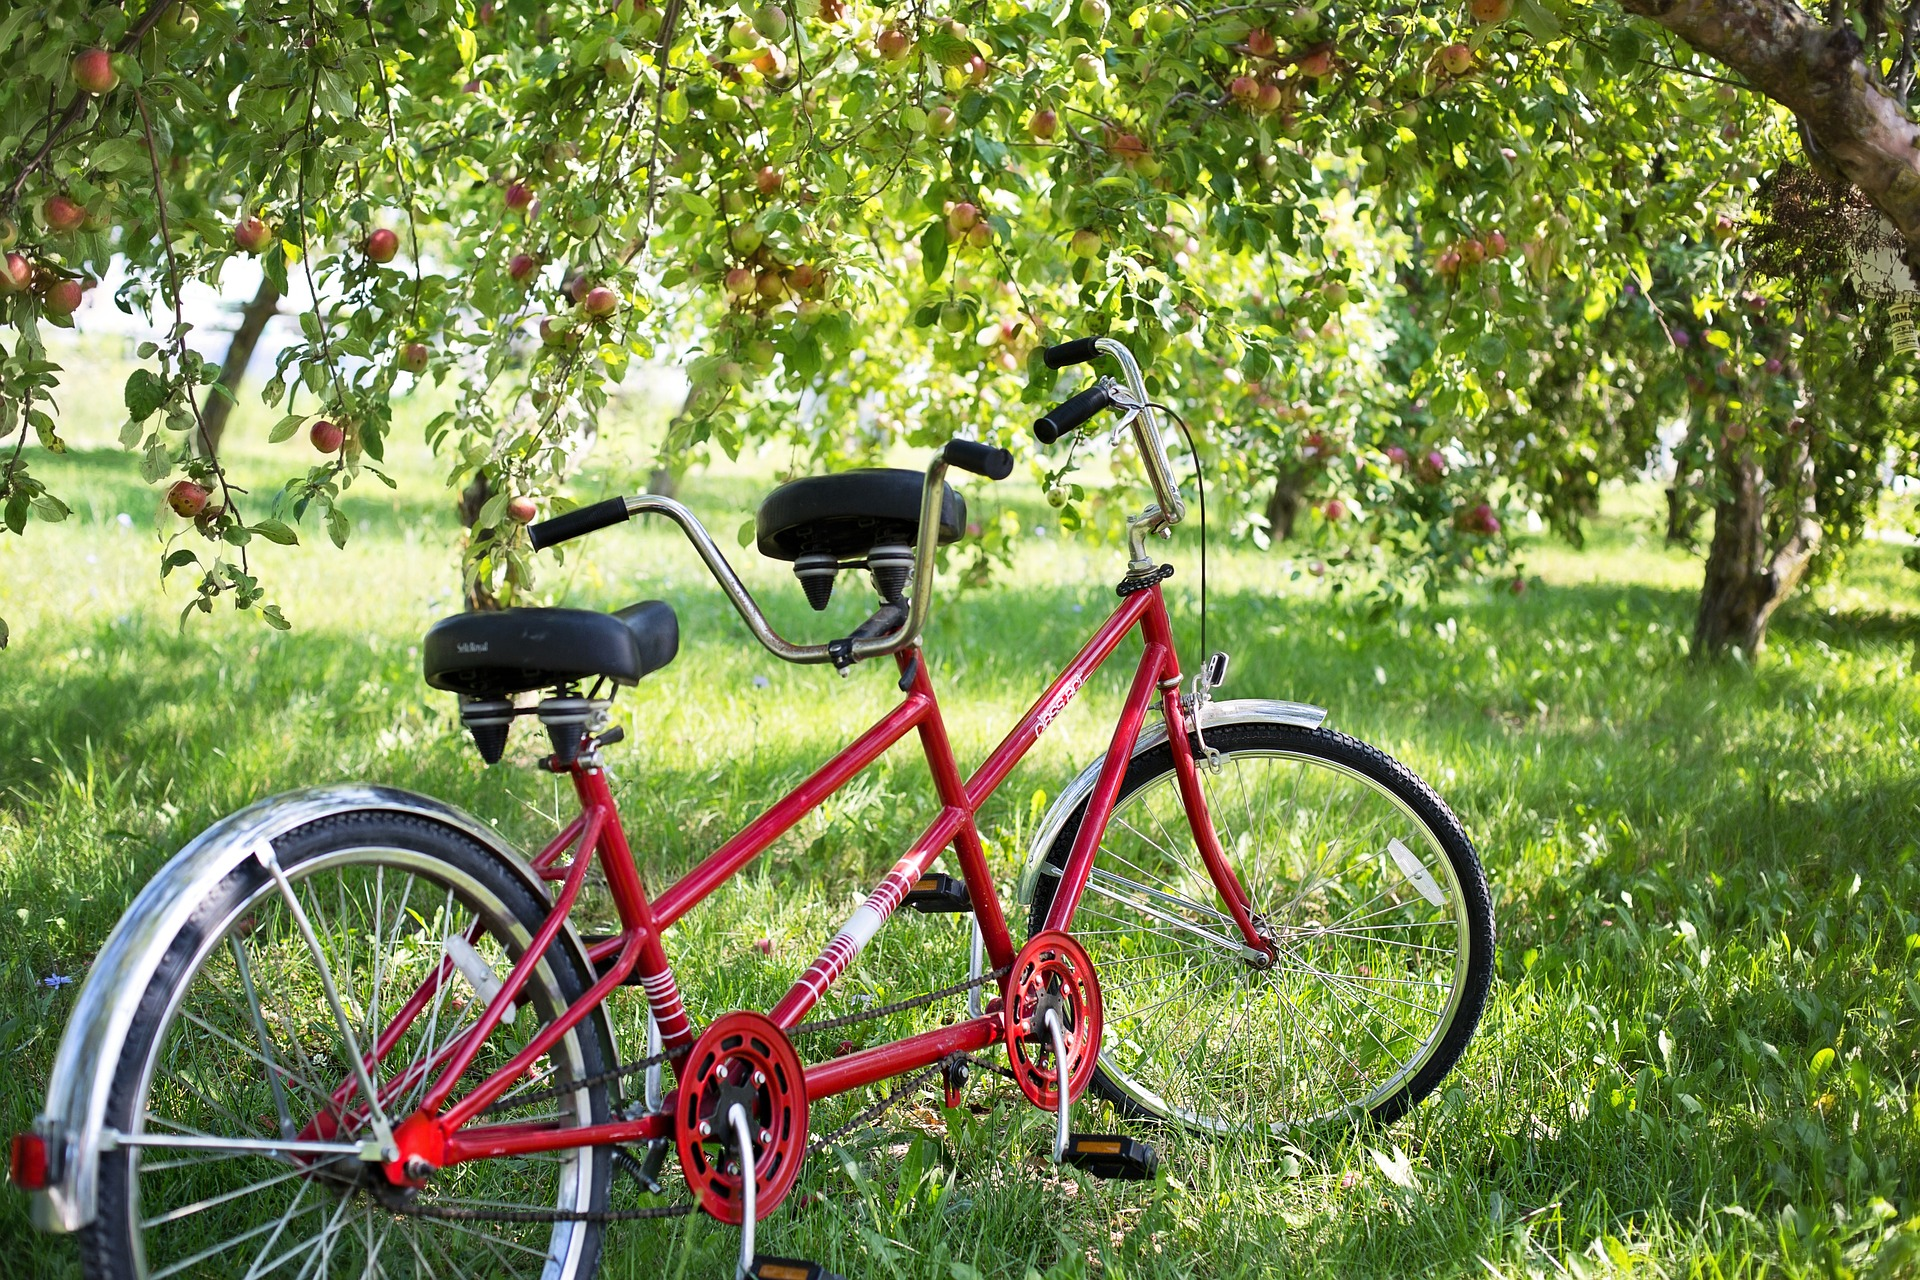 Tandem-Fahrrad in Obstwiese